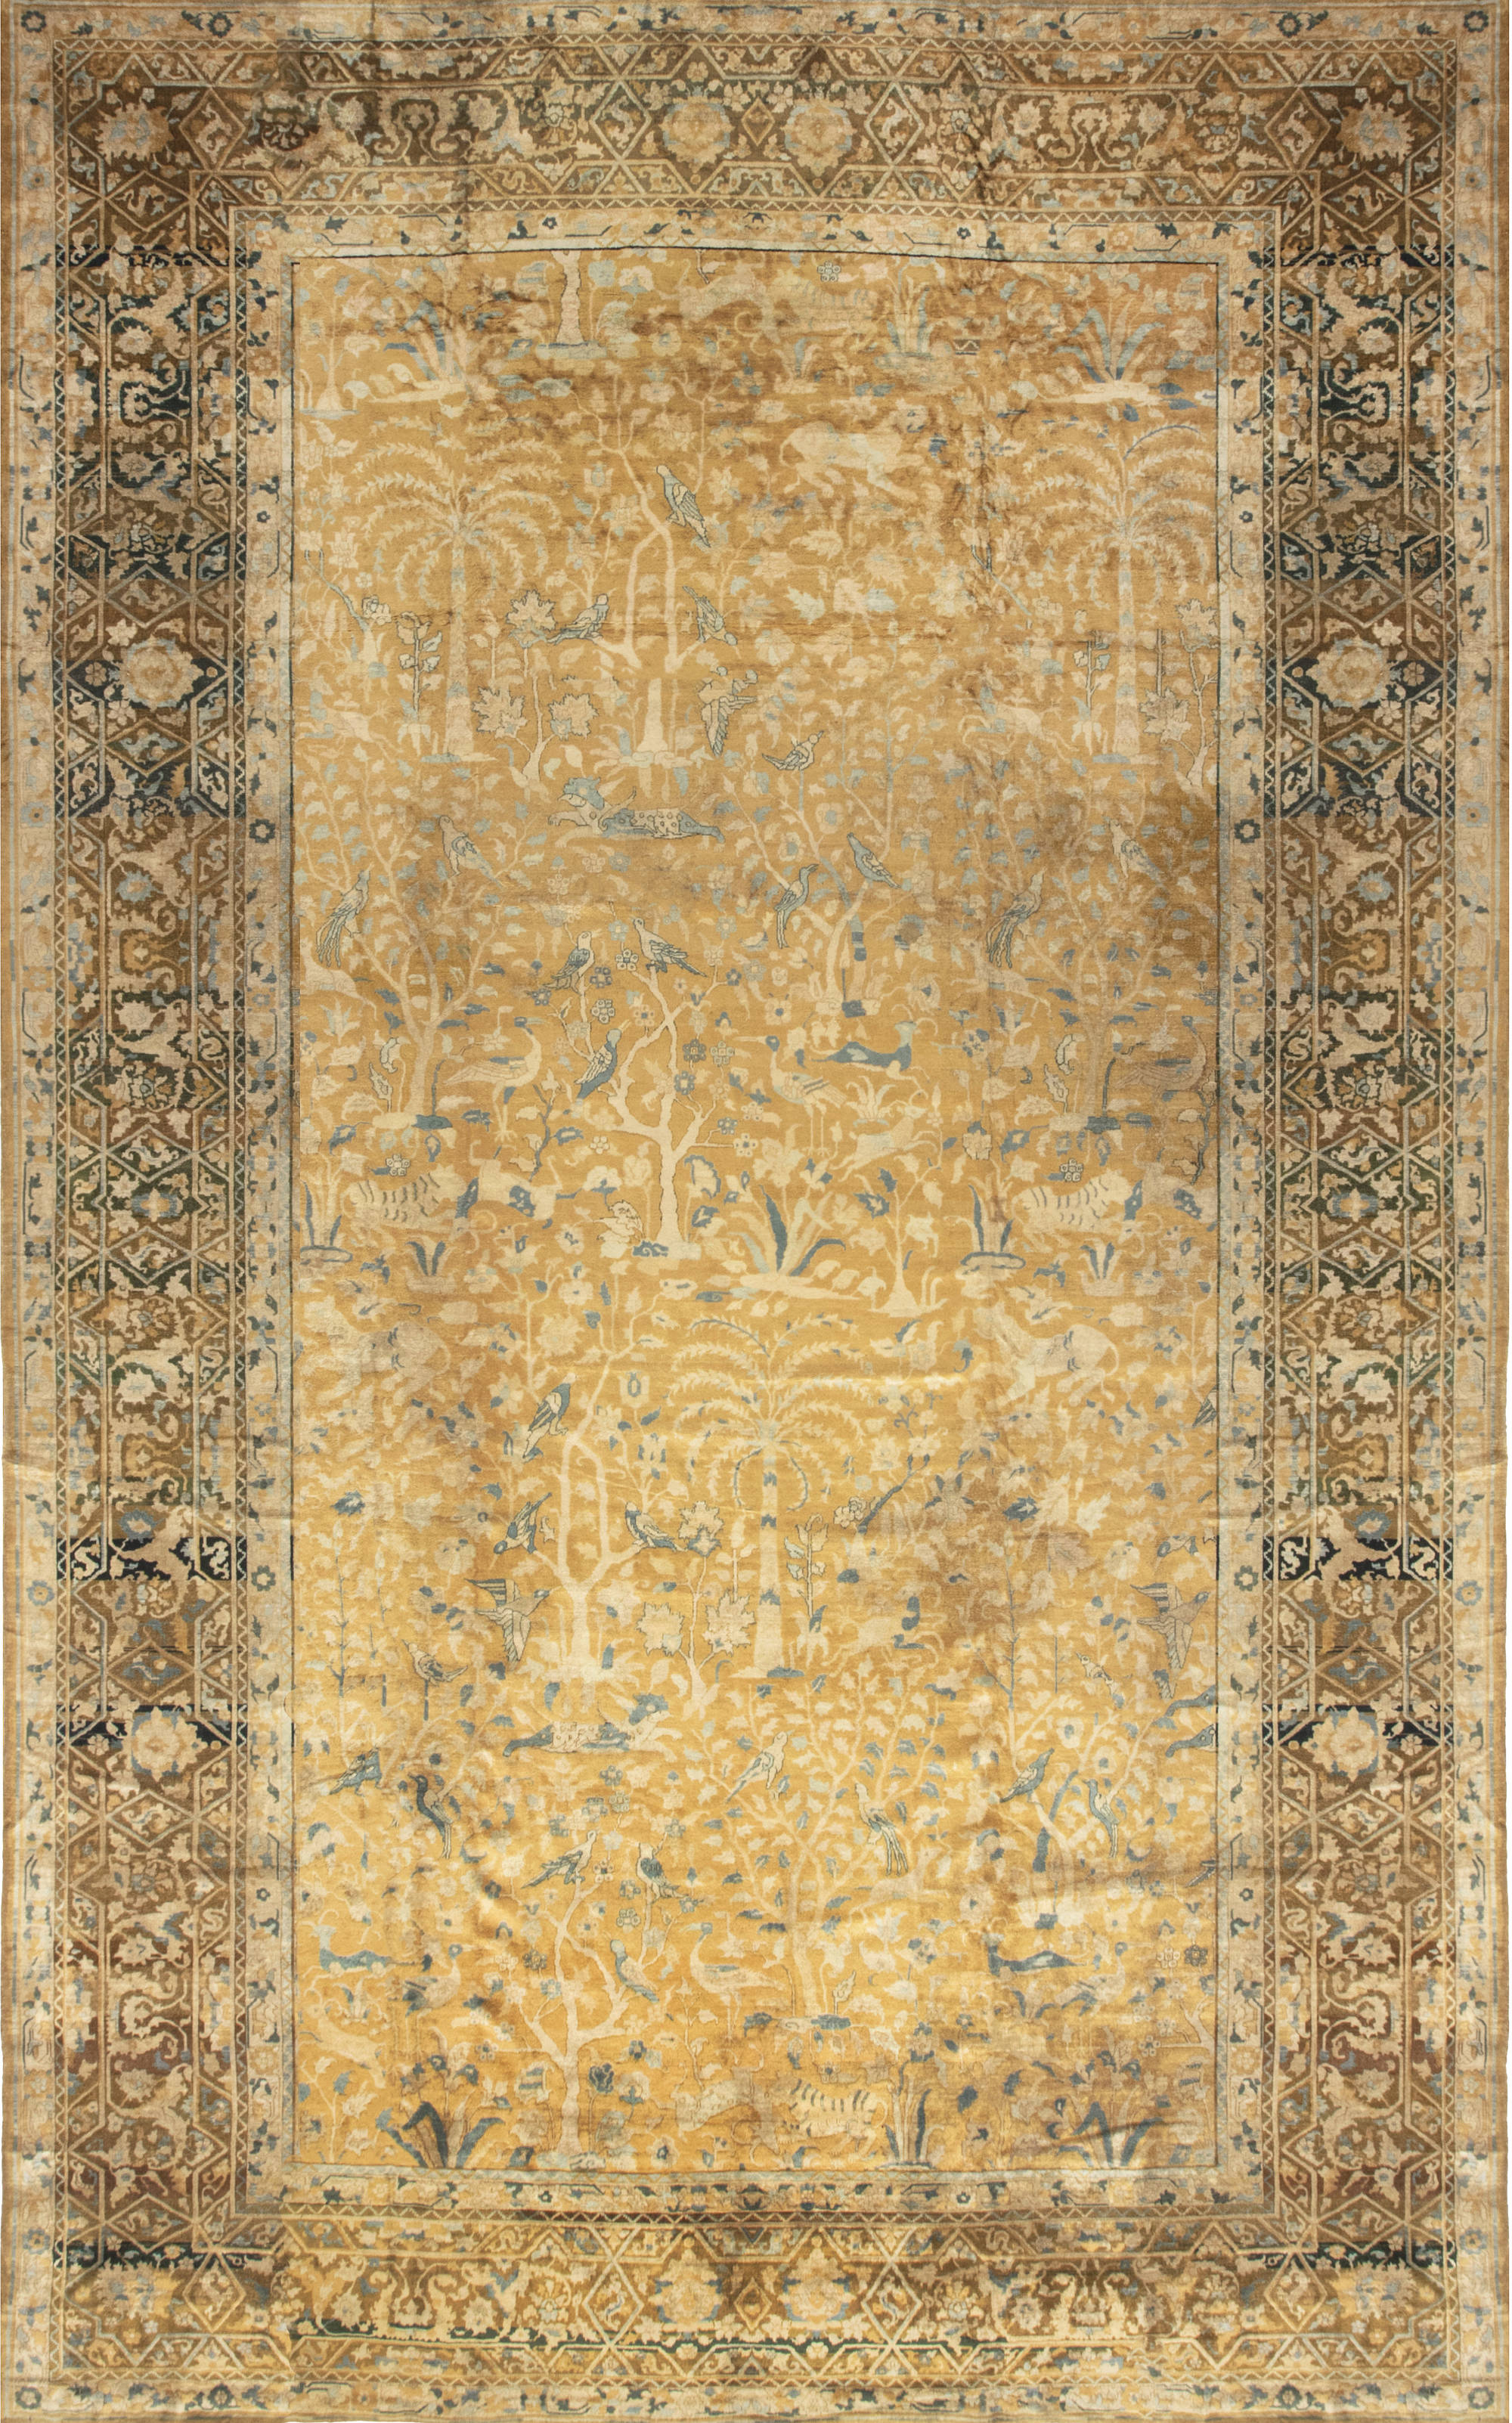 Antique Indian Carpet BB3159